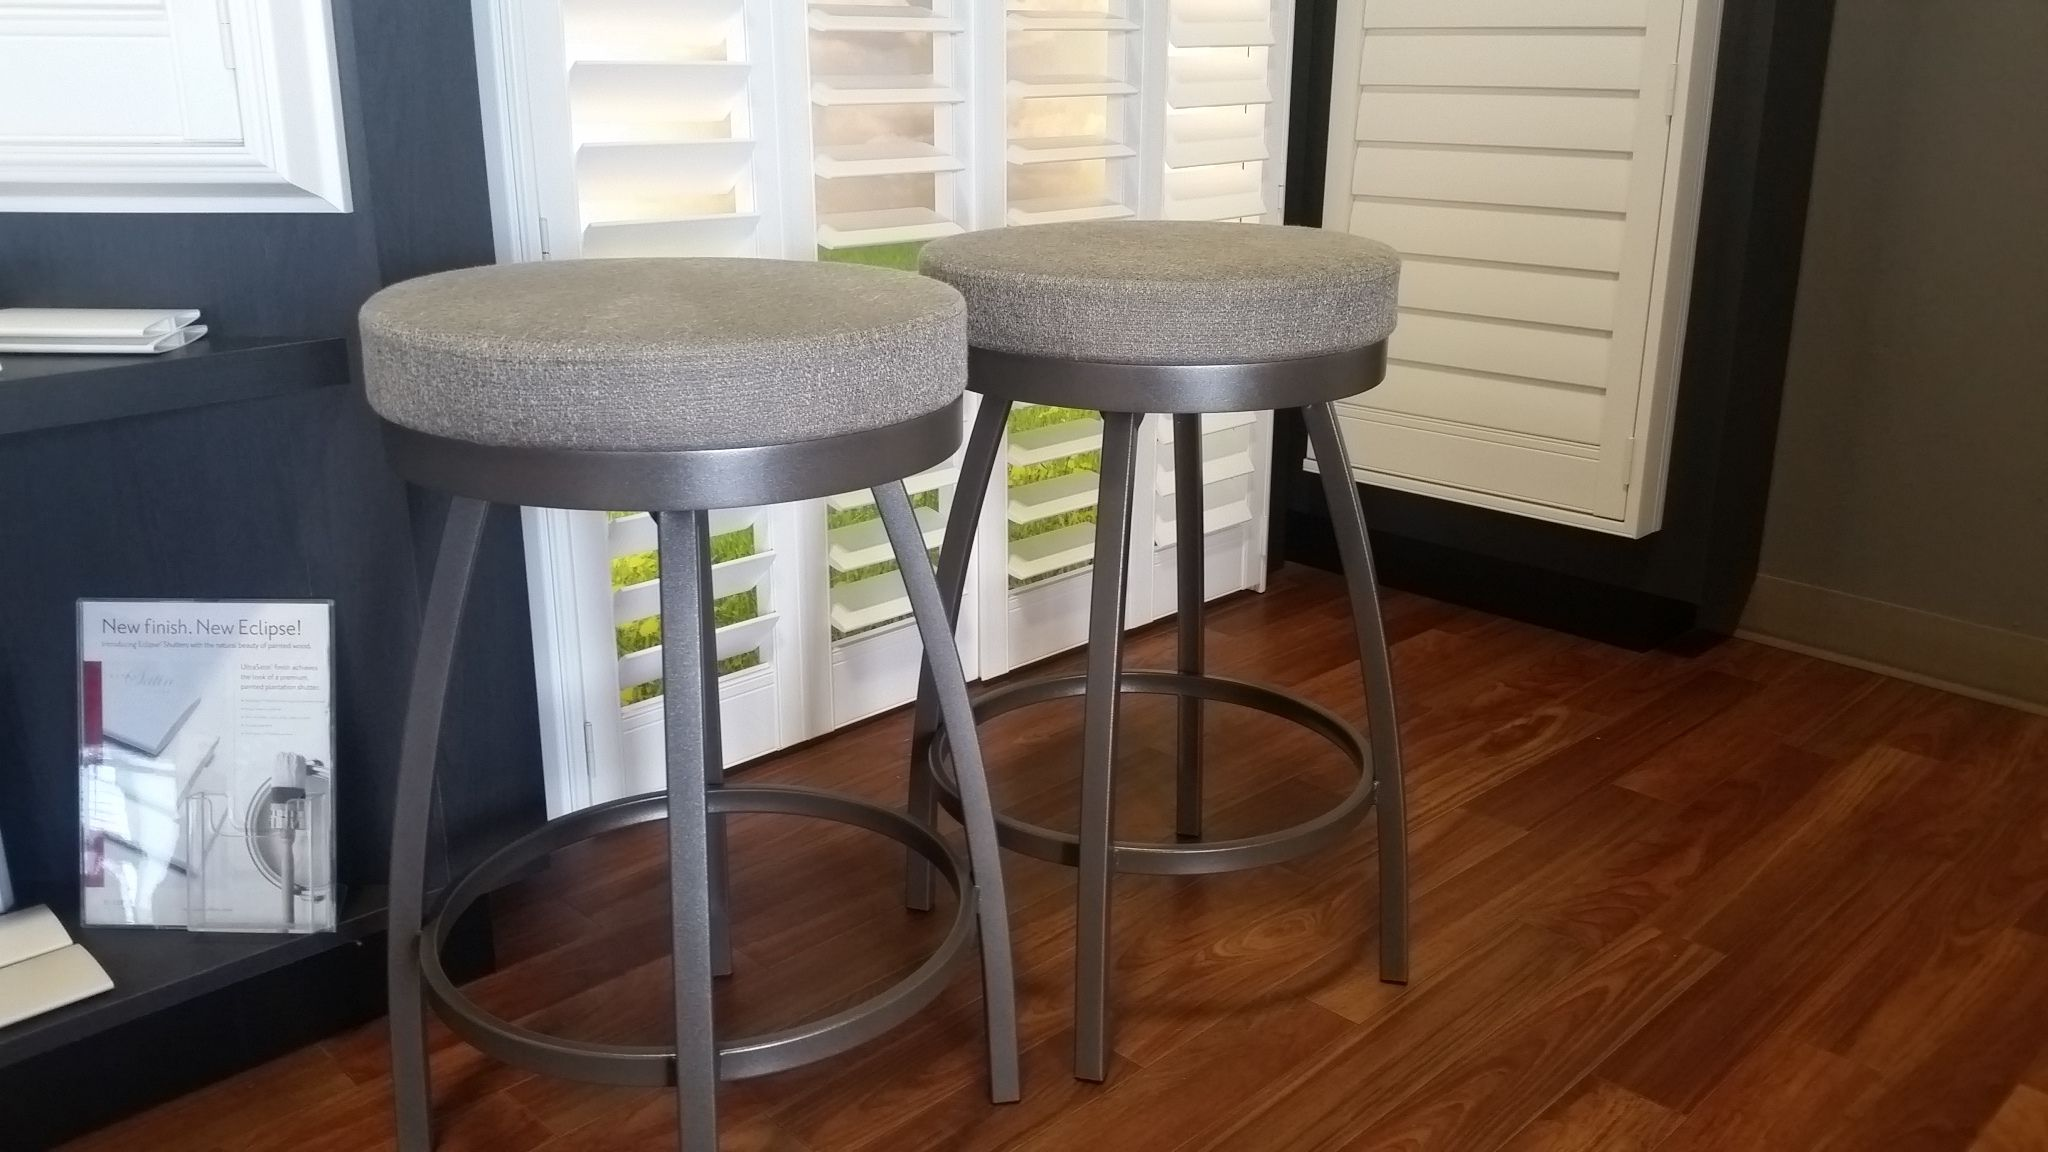 Bar Stools Burlington Ontario Bar Stools Henry Styles Home Decor